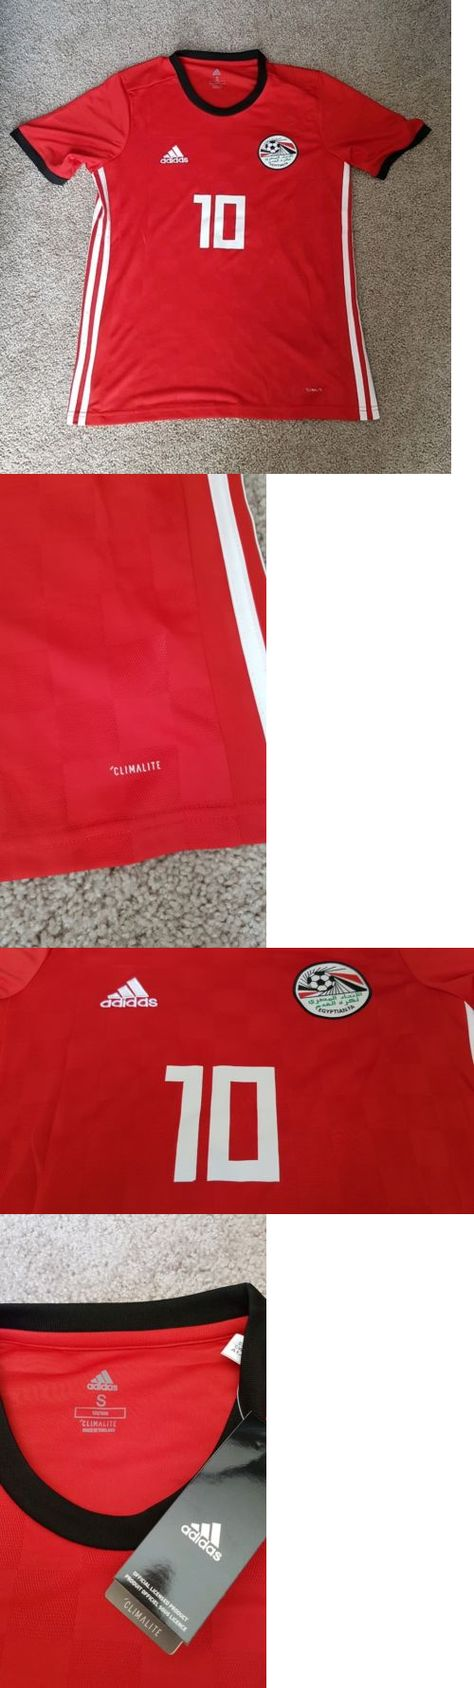 6330d71bb22 Men 123490  Egypt Soccer Jersey Home Red Small Mohamed Salah World Cup 2018  -  BUY IT NOW ONLY   40 on  eBay  egypt  soccer  jersey  small  mohamed   salah   ...